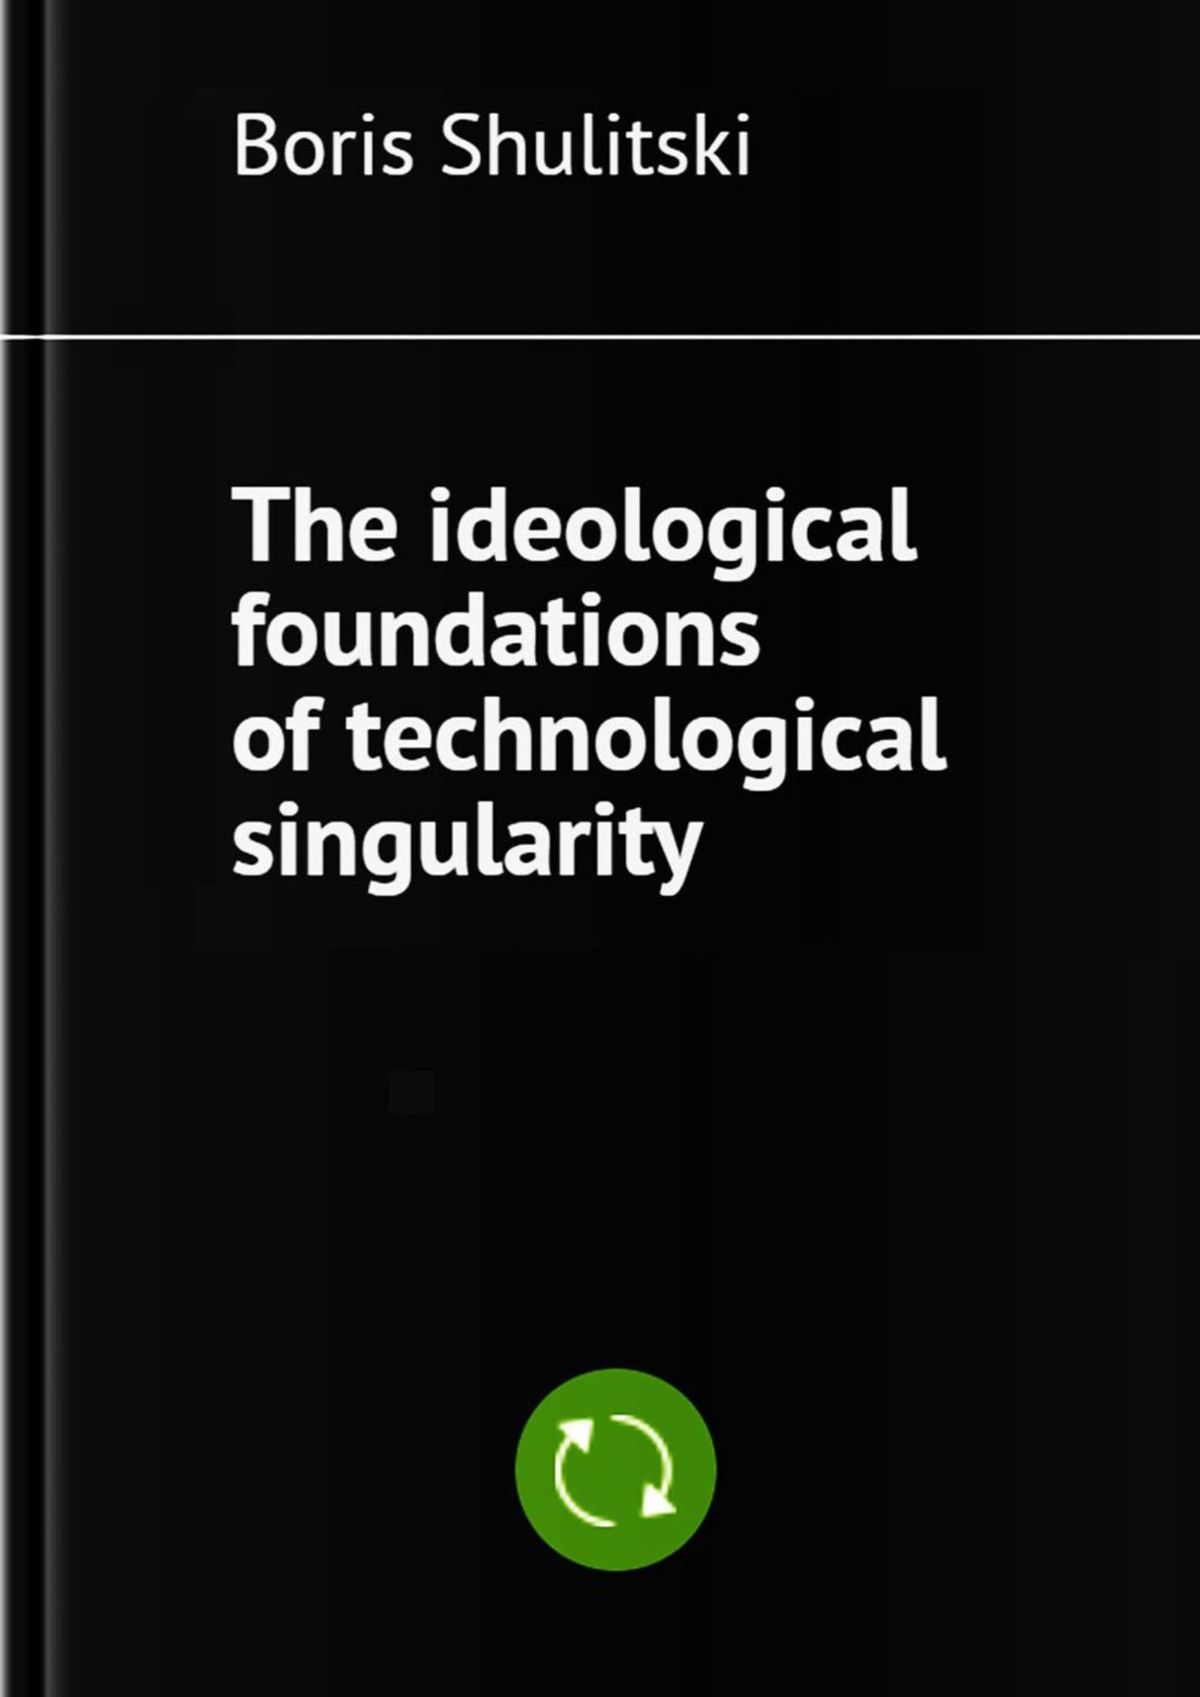 Boris Shulitski The ideological foundations of technological singularity boris shulitski the ideological foundations of technological singularity